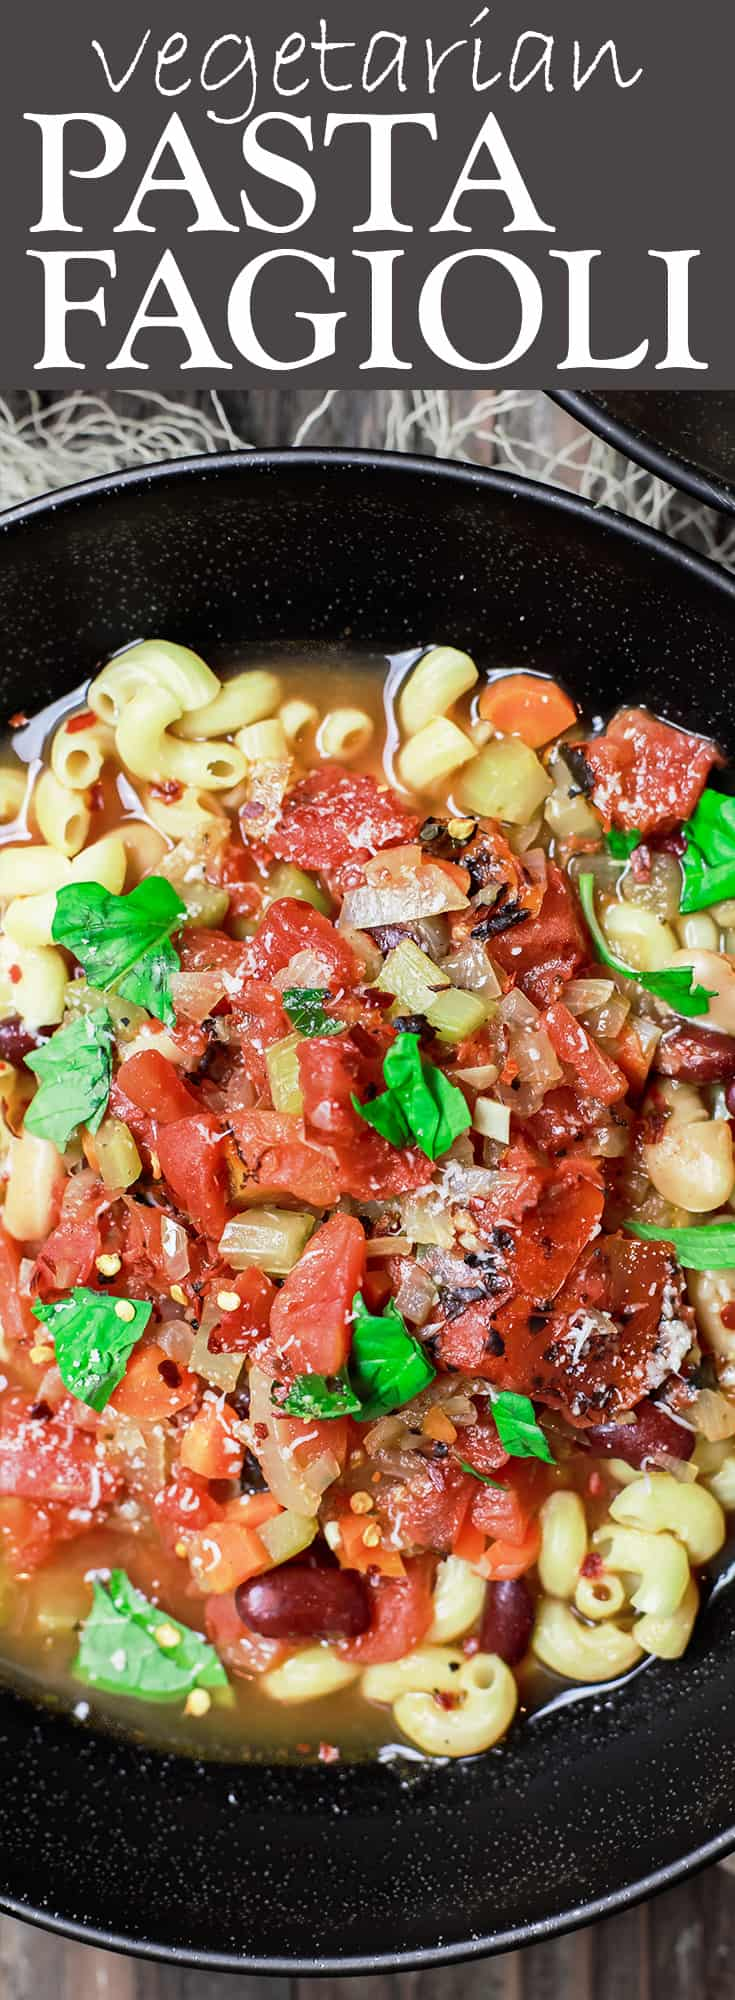 Vegetarian Pasta Fagioli Recipe | The Mediterranean Dish. Easy, rustic, hearty Italian bowl of pasta and beans soup. With kidney beans, cannellini beans, and fire roasted tomatoes. A pinch of oregano and parmesan cheese takes it to the next level. Serves a big crowd on a budget. See it on TheMediterraneanDish.com